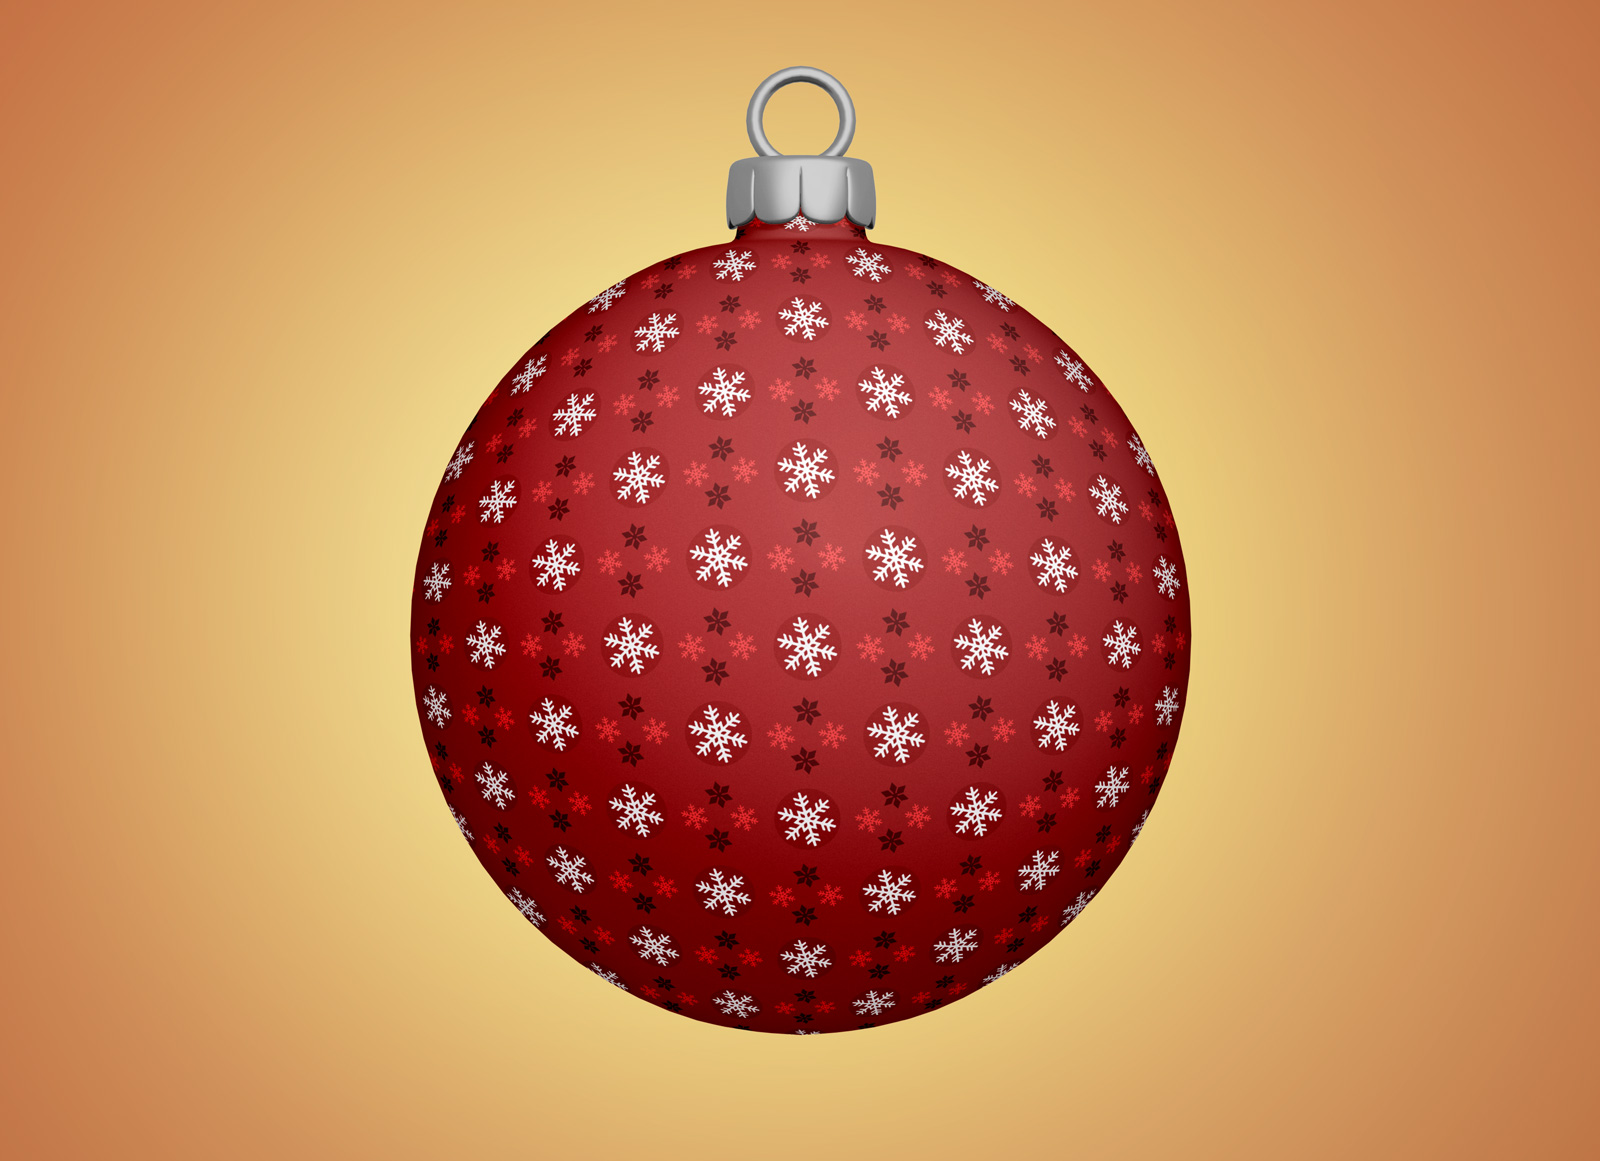 Free Christmas Tree Bauble / Ball Ornaments Mockup PSD ...